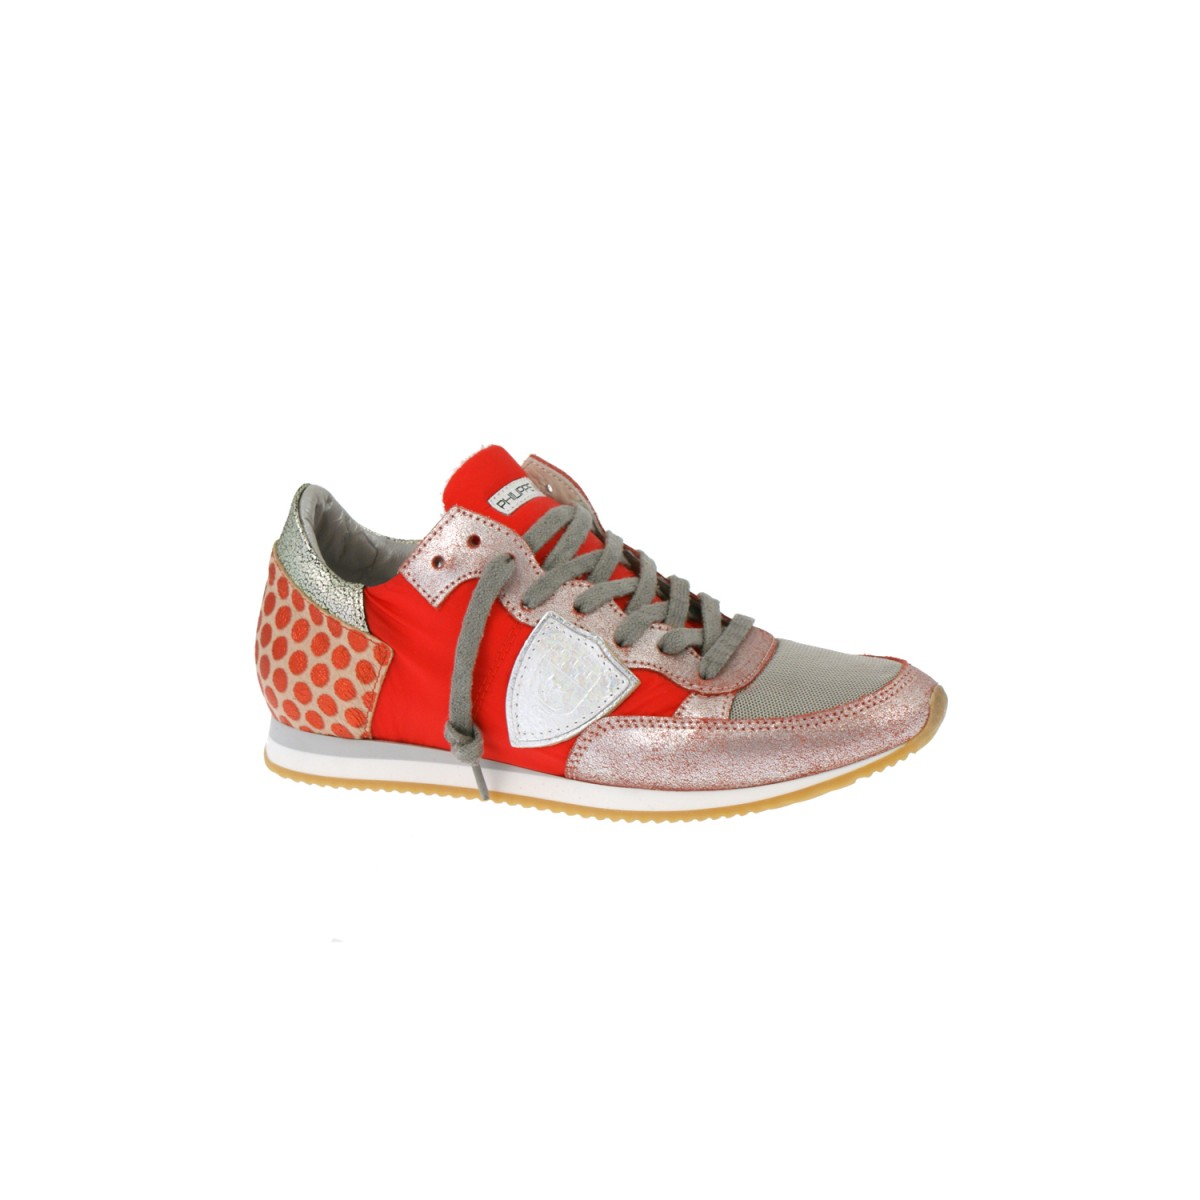 Philippe Model TRLD DT03 Tropez Red Dots-35